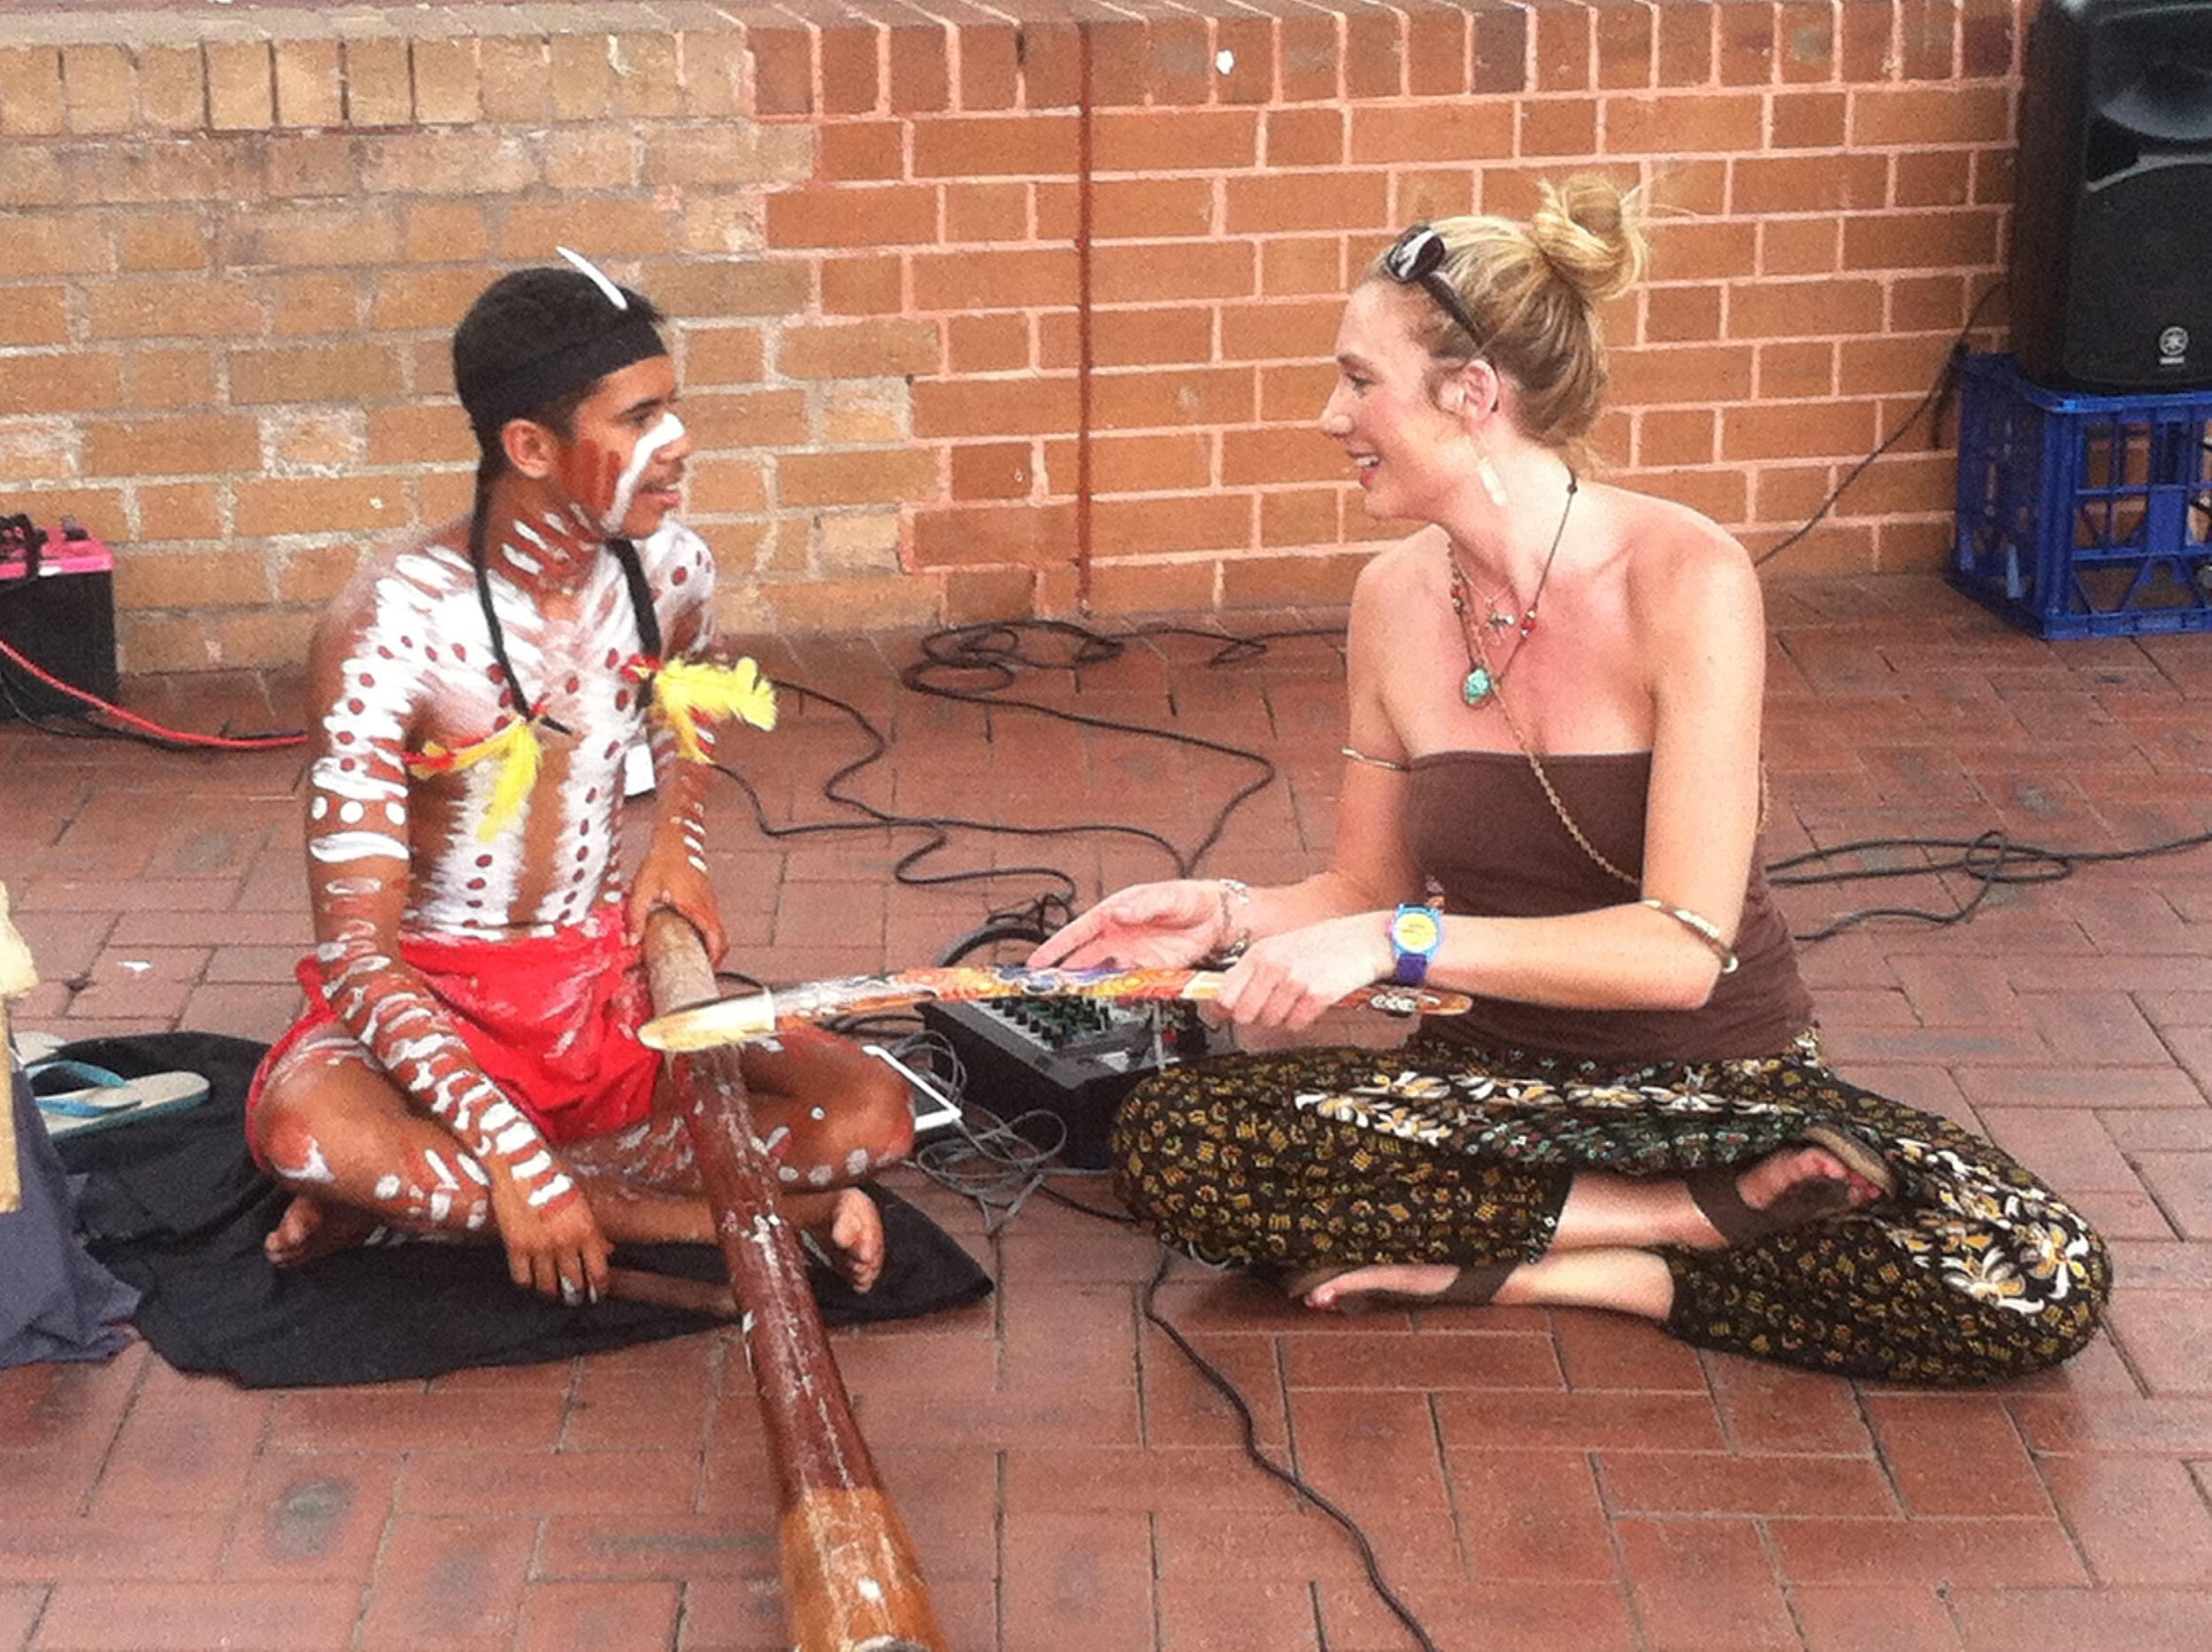 During the winter of 2013, Mandela recorded interviews in Australia. Here she sits with Jemia, a Didjeridu artist and member of the Ngarigoo Nation.